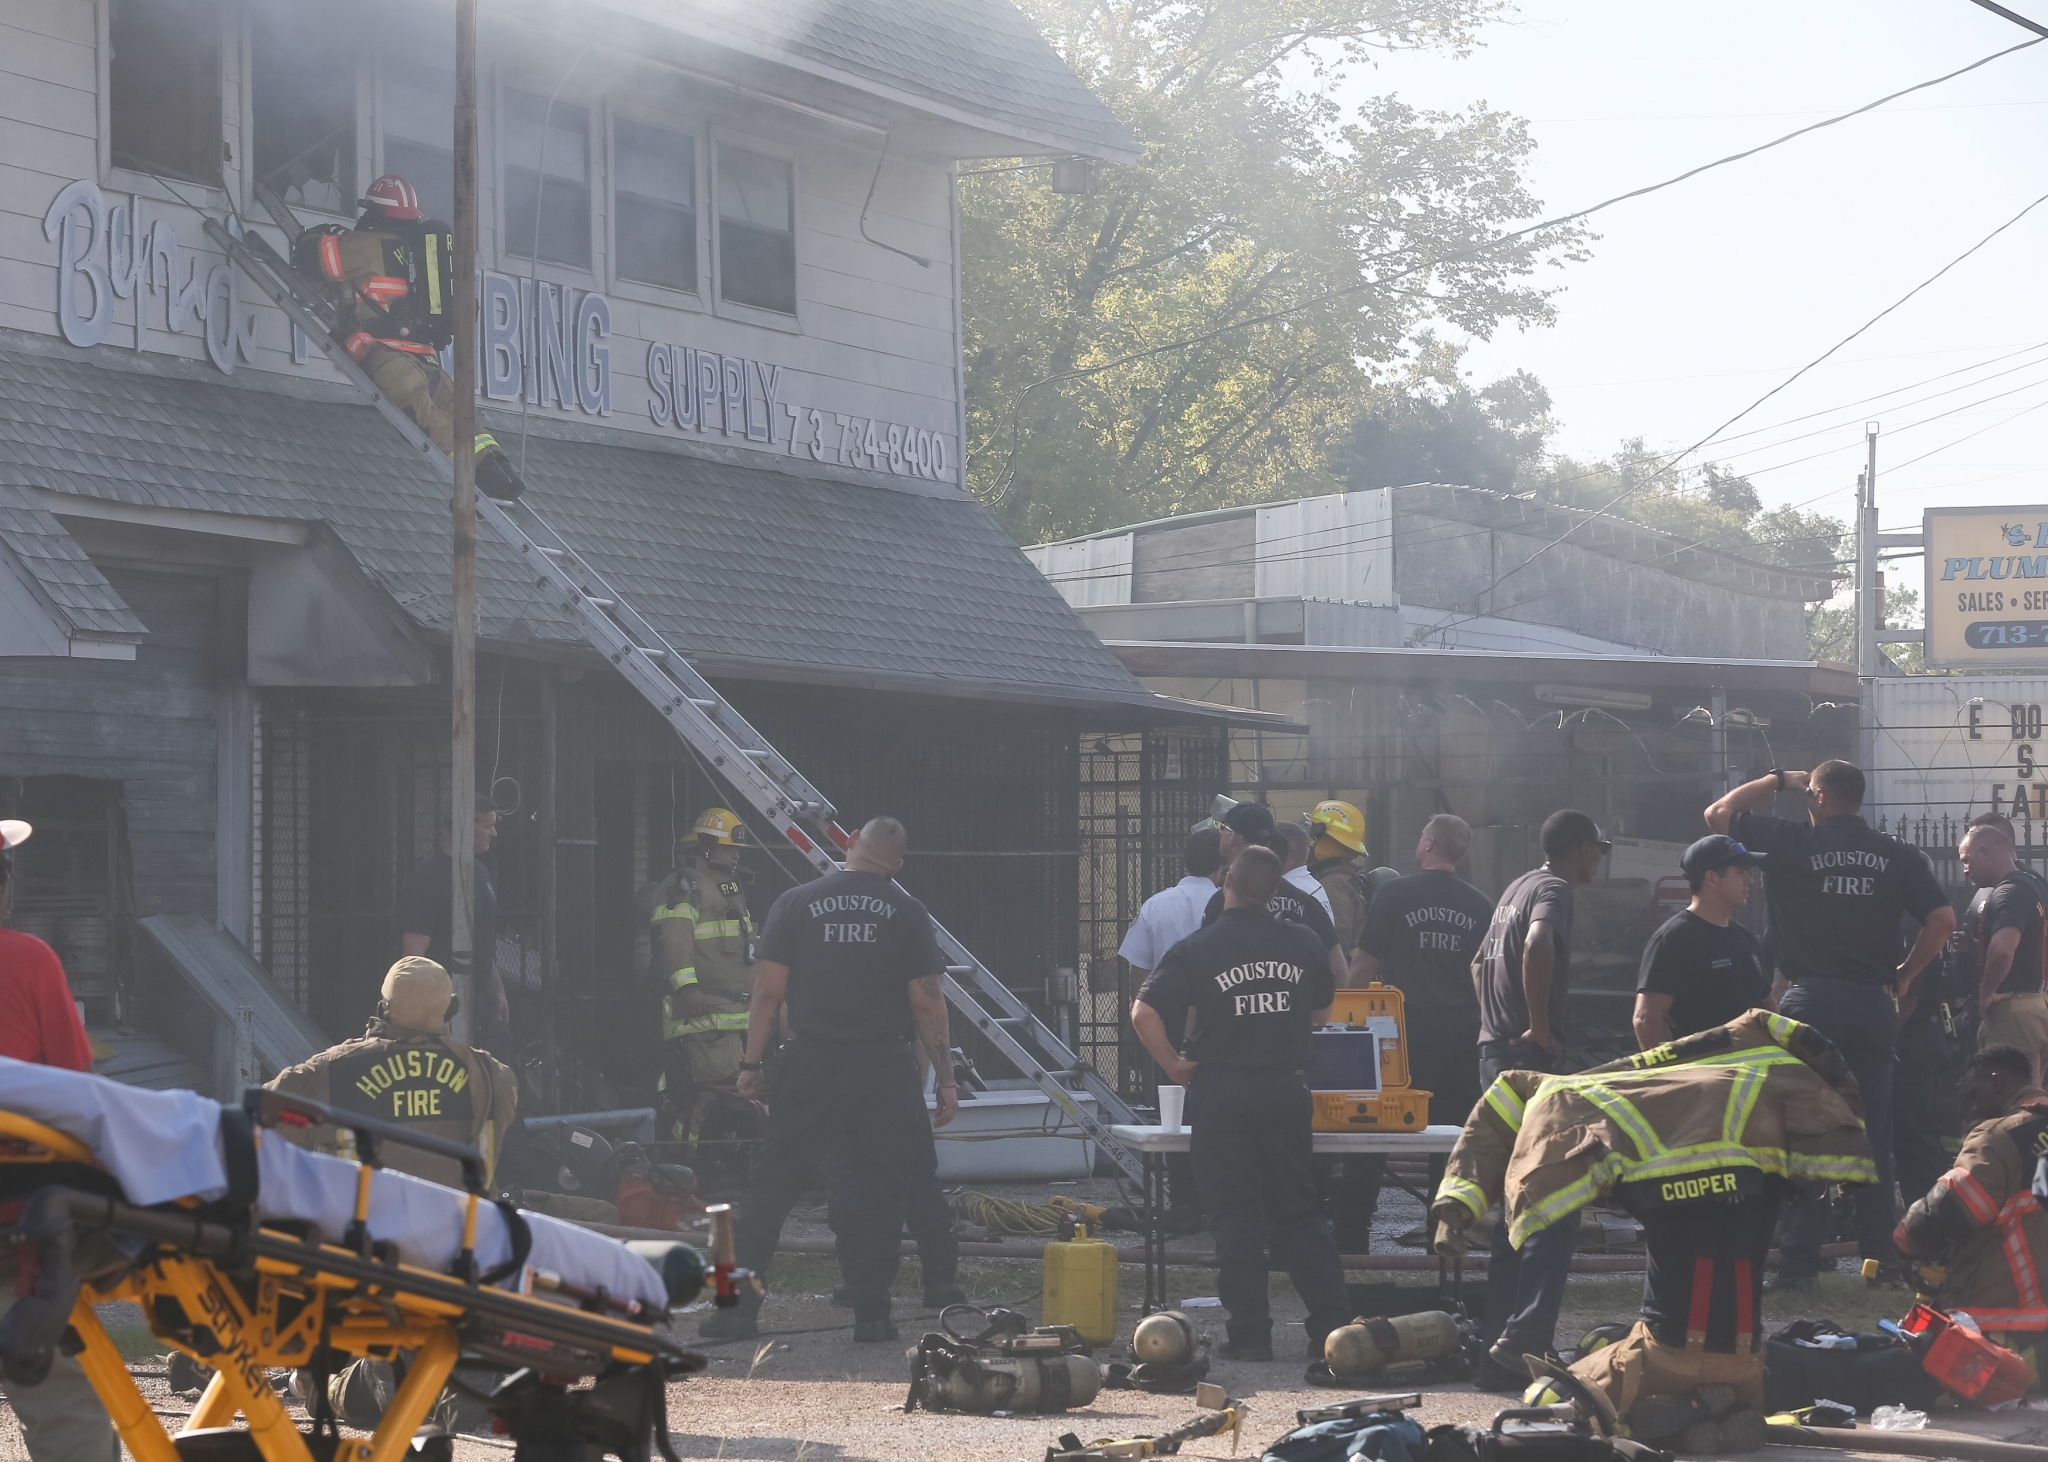 Man died in fire at plumbing company in south houston houston chronicle